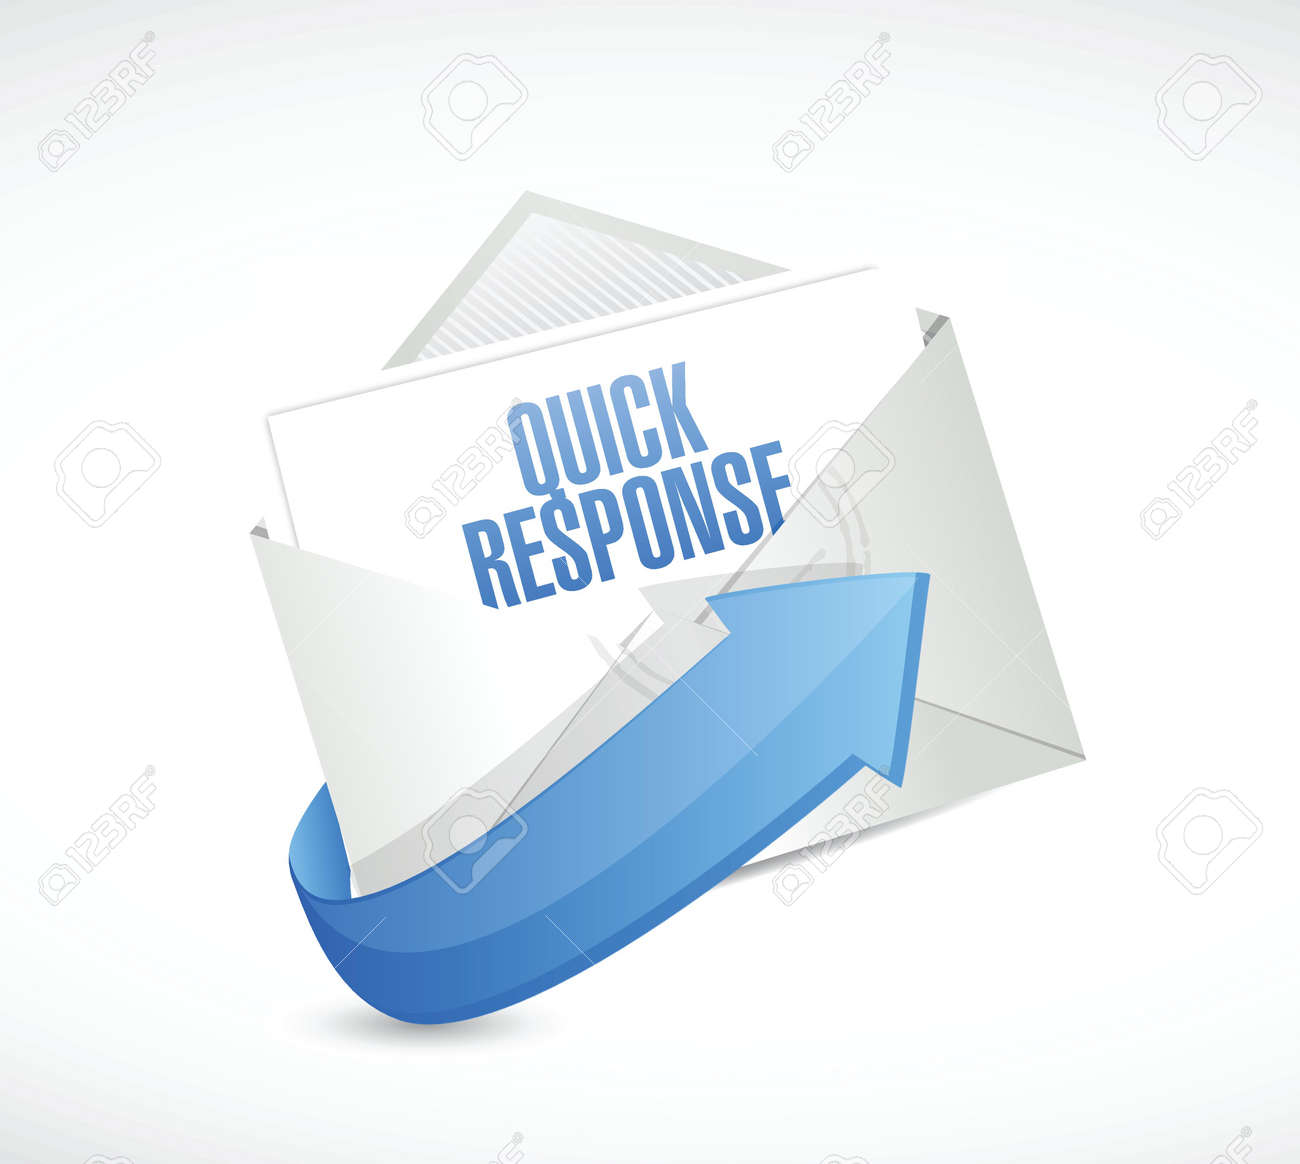 quick response email illustration design over a white background